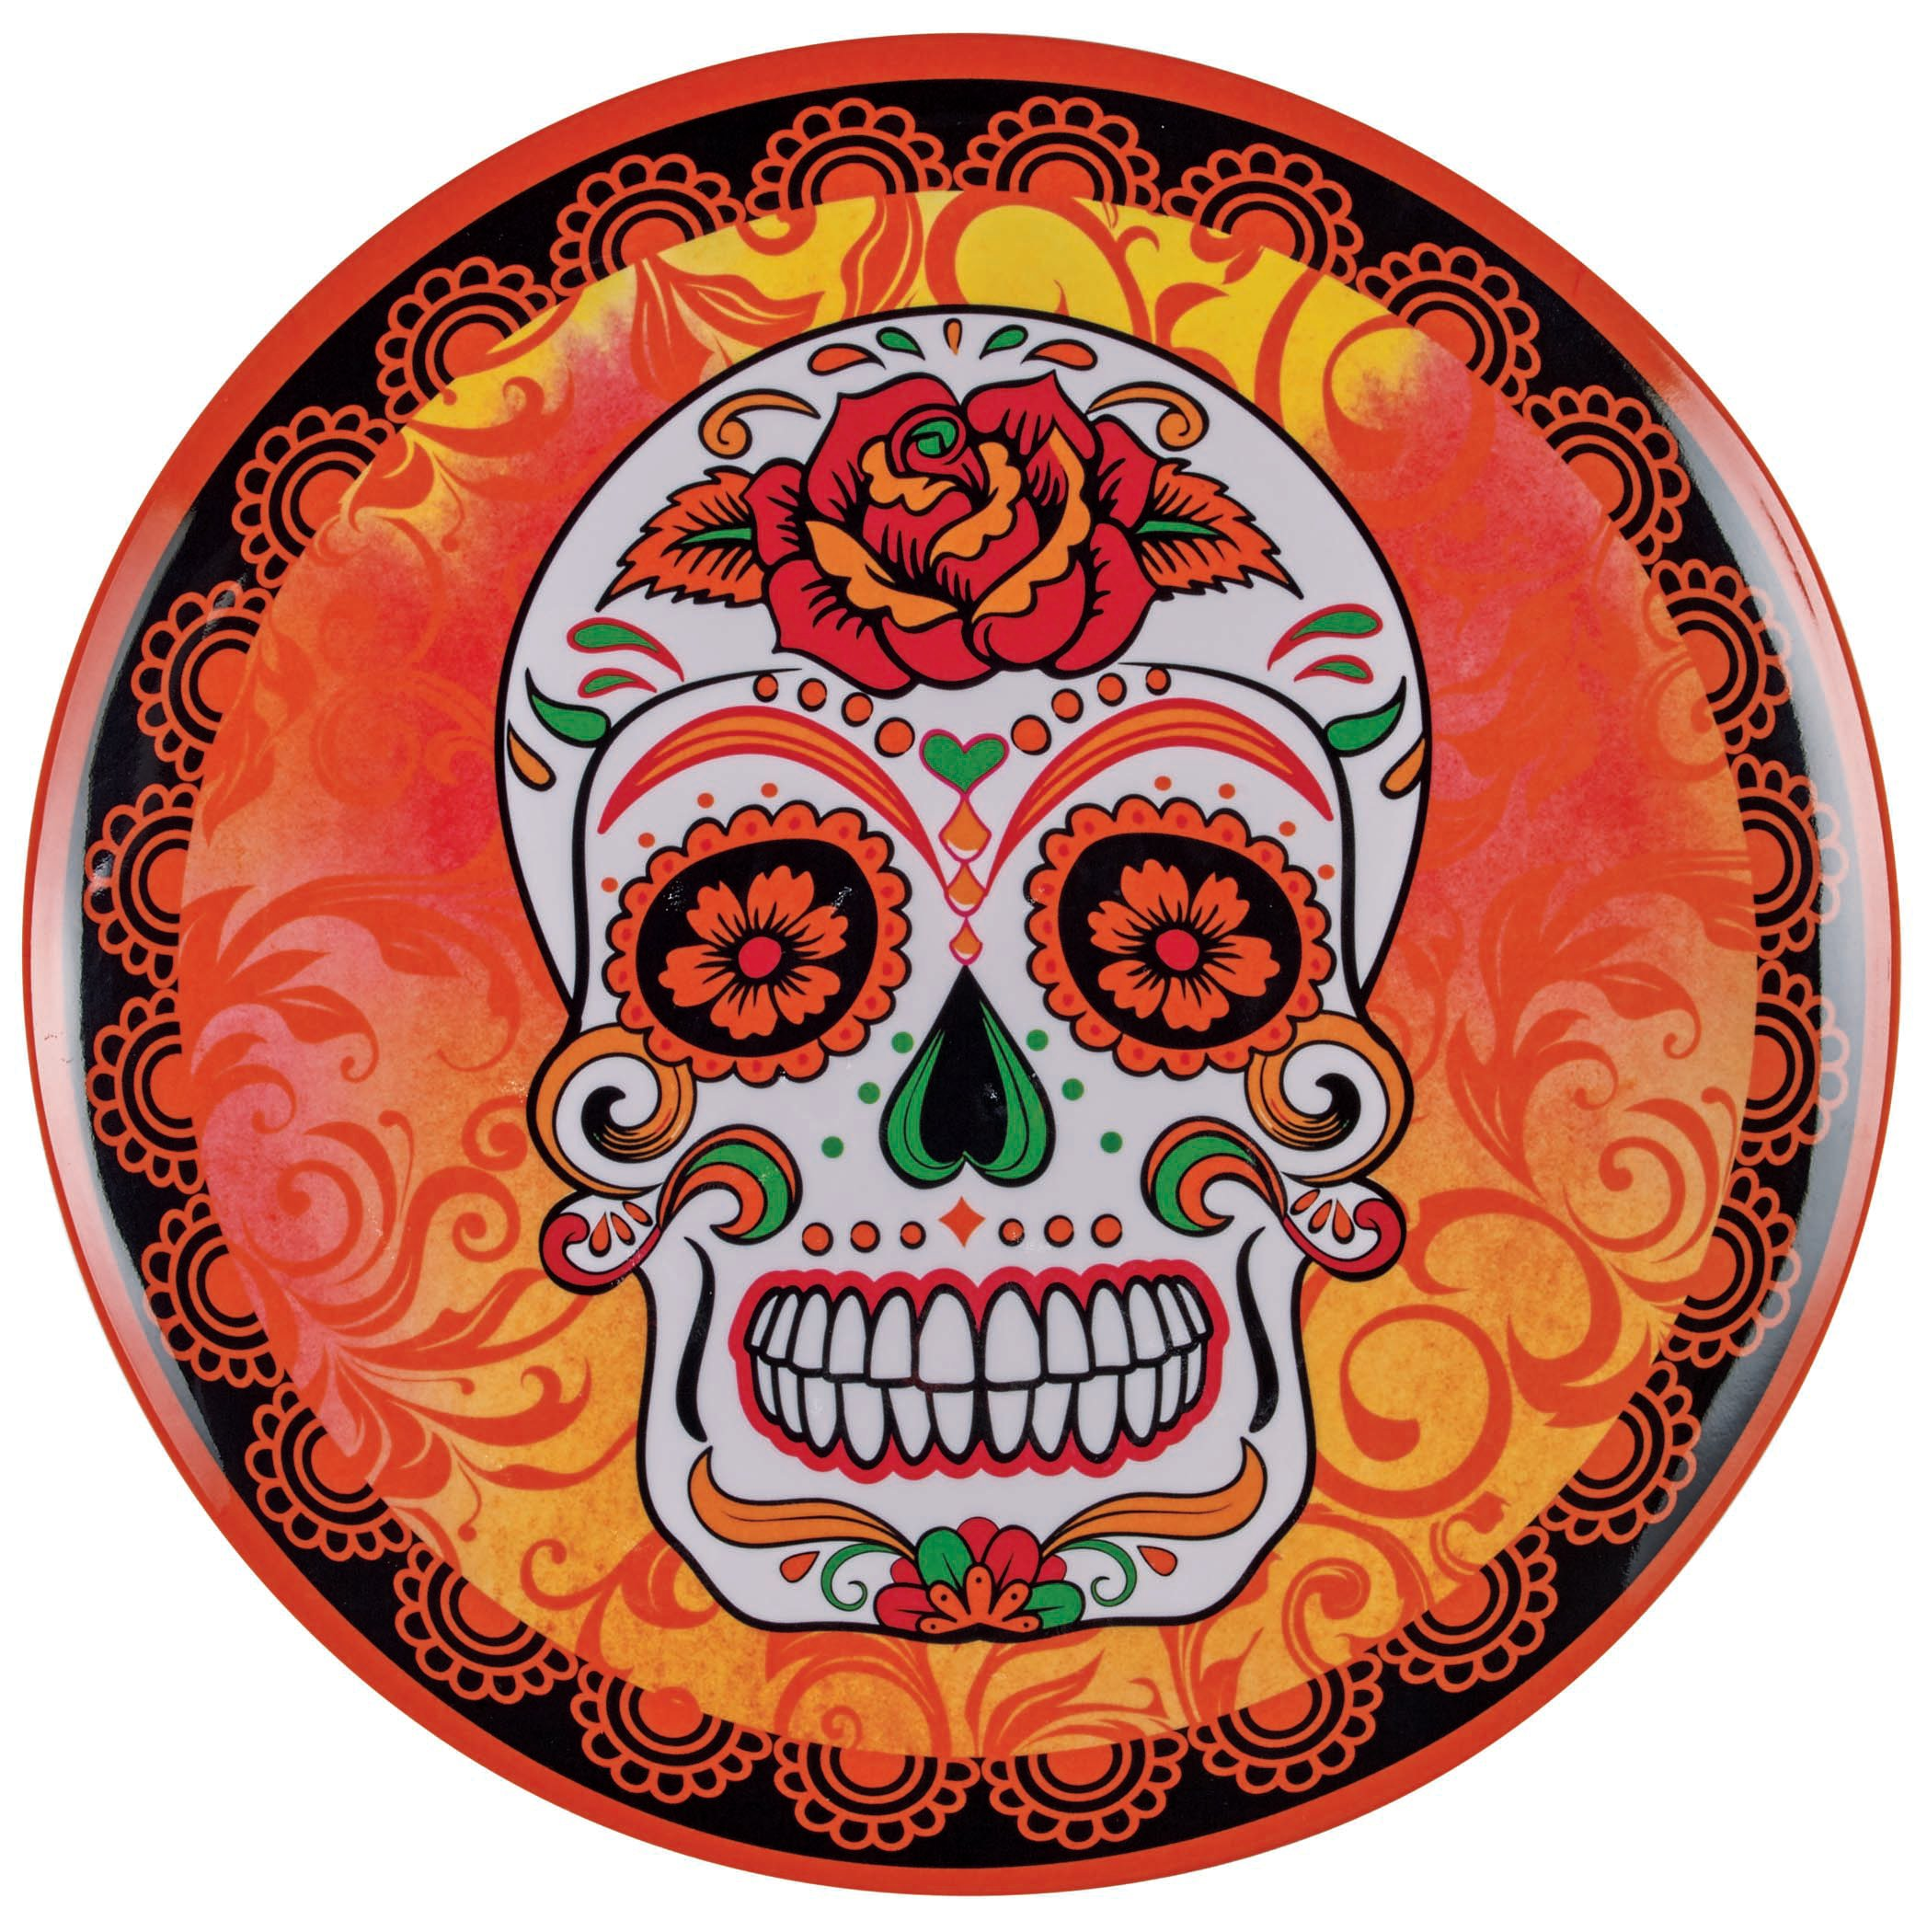 Cocinaware Orange Day Of The Dead Skull Melamine 11 in Dinner Plate - Shop Dishes at HEB  sc 1 st  HEB.com & Cocinaware Orange Day Of The Dead Skull Melamine 11 in Dinner Plate ...